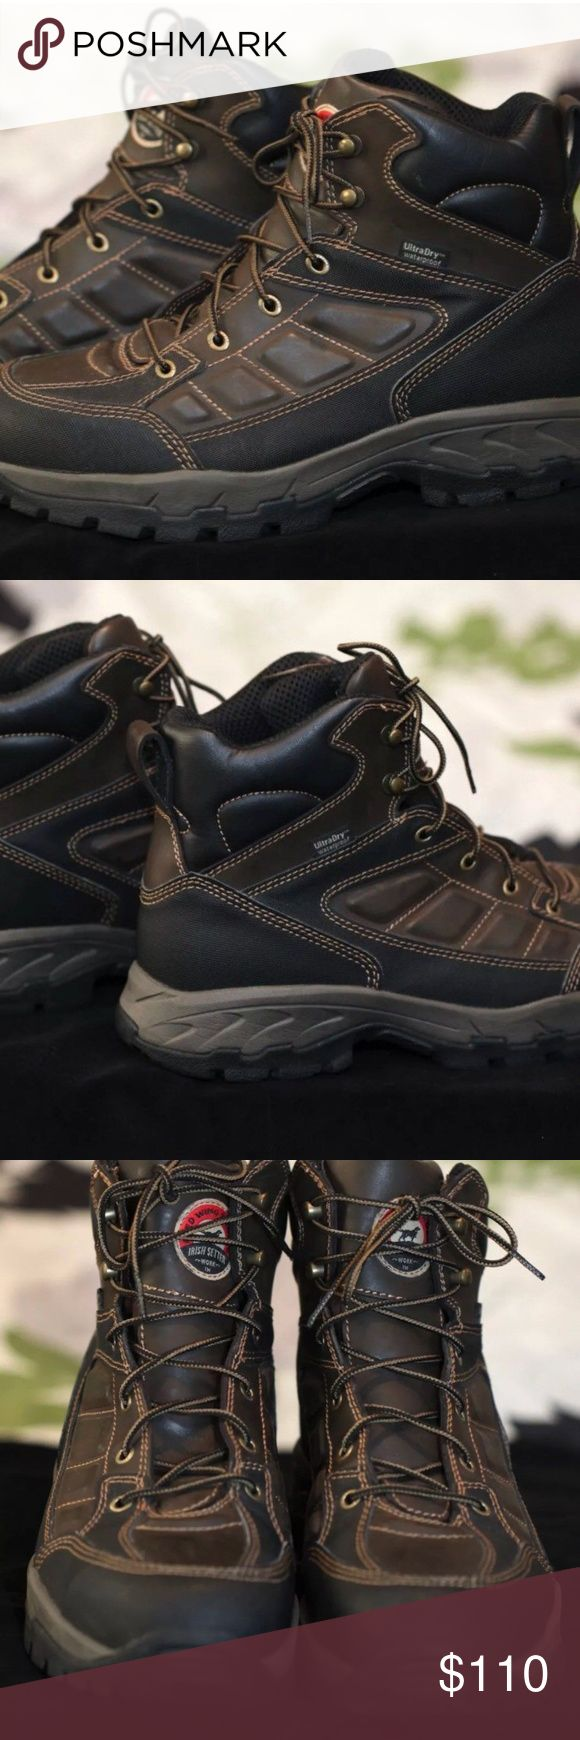 Red Wing Boots Irish Setter Wo rk Hiking 10.5 Red Wing Boots Irish Setter Work Hiking UltraDry Waterproof Ely 83400 Mens 10.5 Red Wing Shoes Shoes Boots #hikingboots #hikeboots